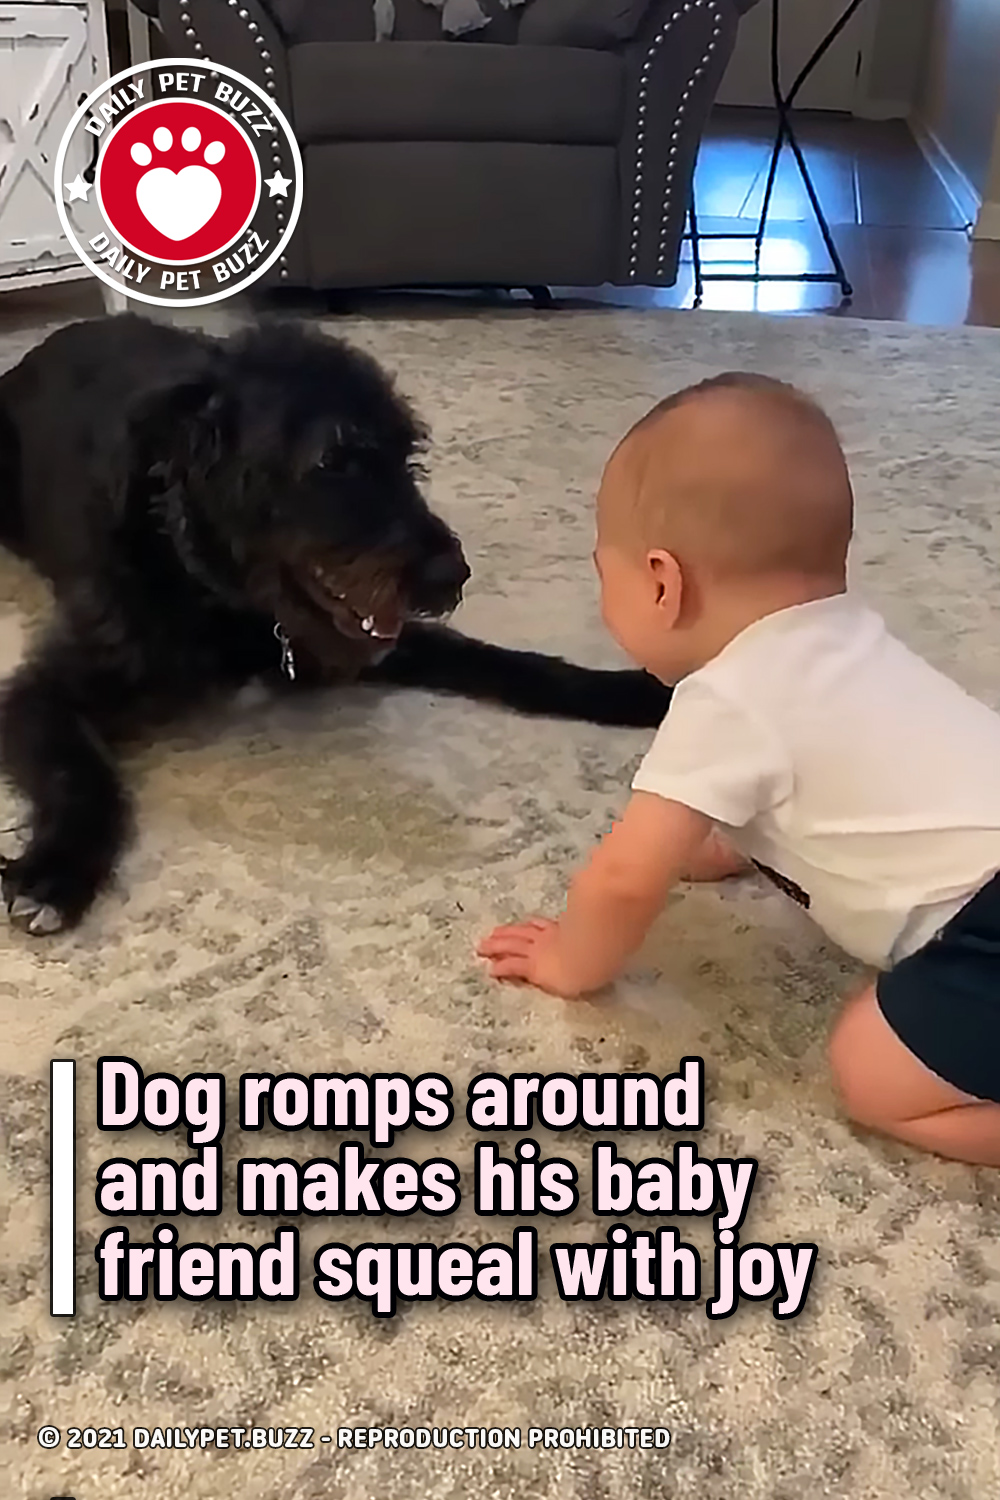 Dog romps around and makes his baby friend squeal with joy